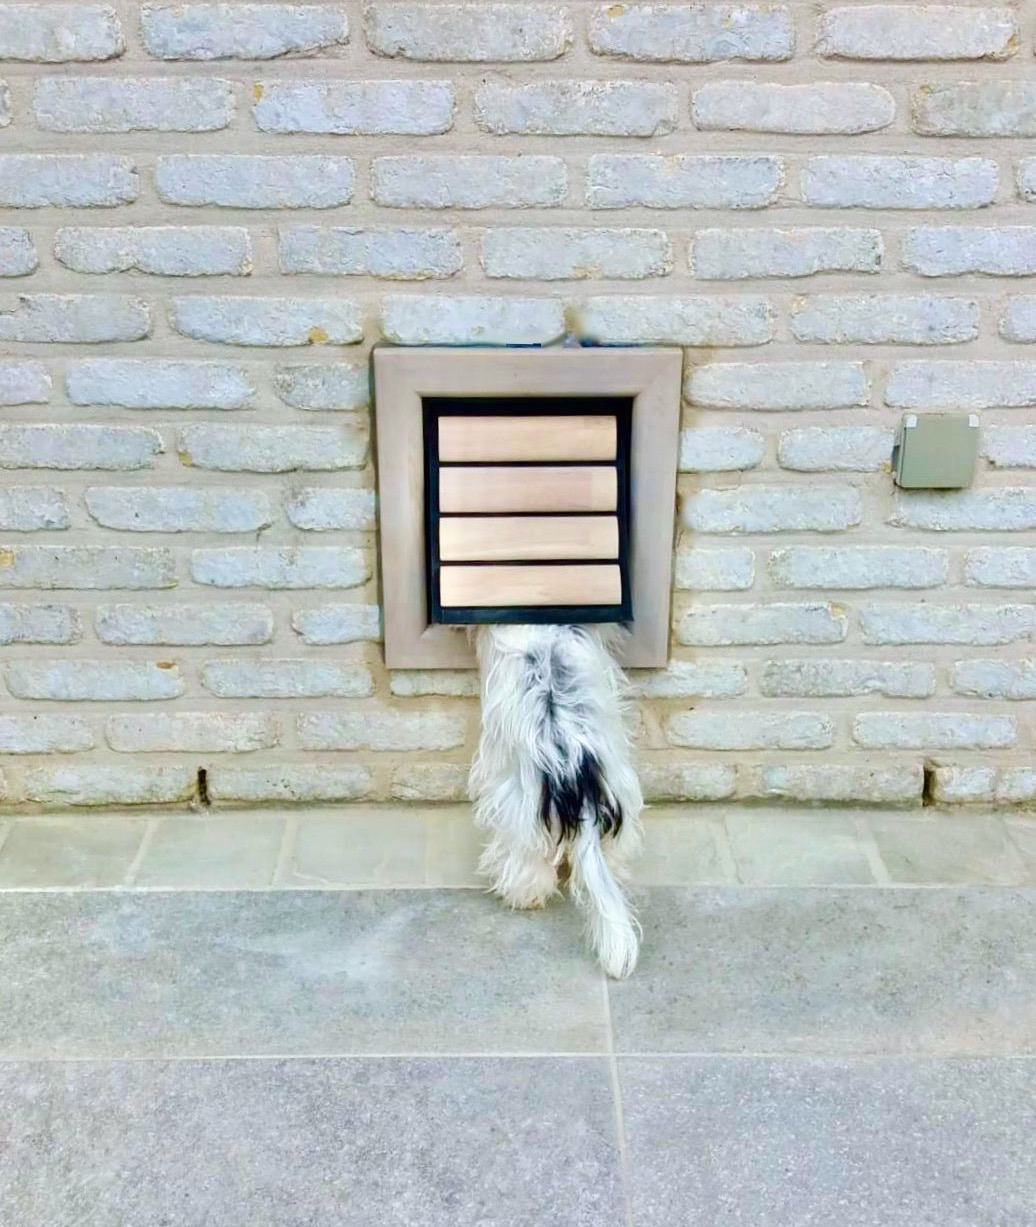 Dog Flap | Dog Door | Nipper (Small) Grey wooden dog door for small dogs installed in a grey brick wall | © Tomsgates